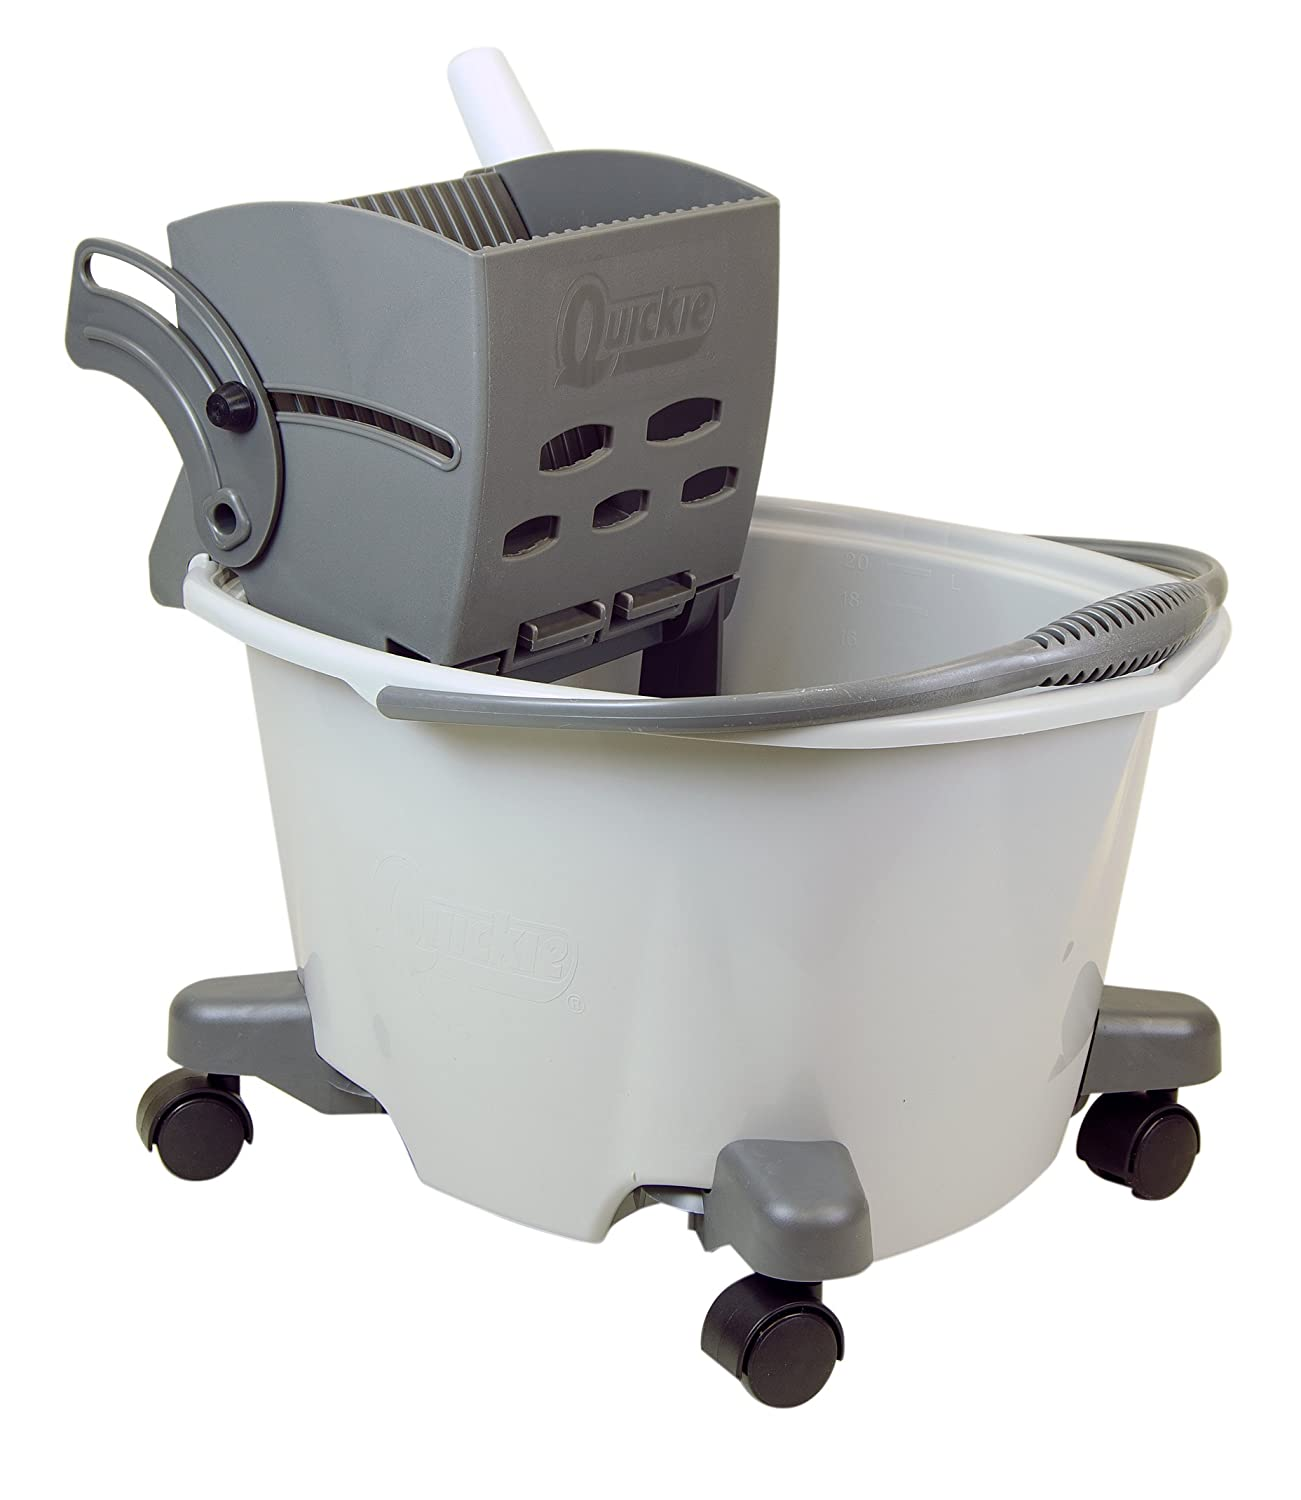 Amazon.com: Quickie Easy Glide Mop Bucket with Wringer: Home & Kitchen